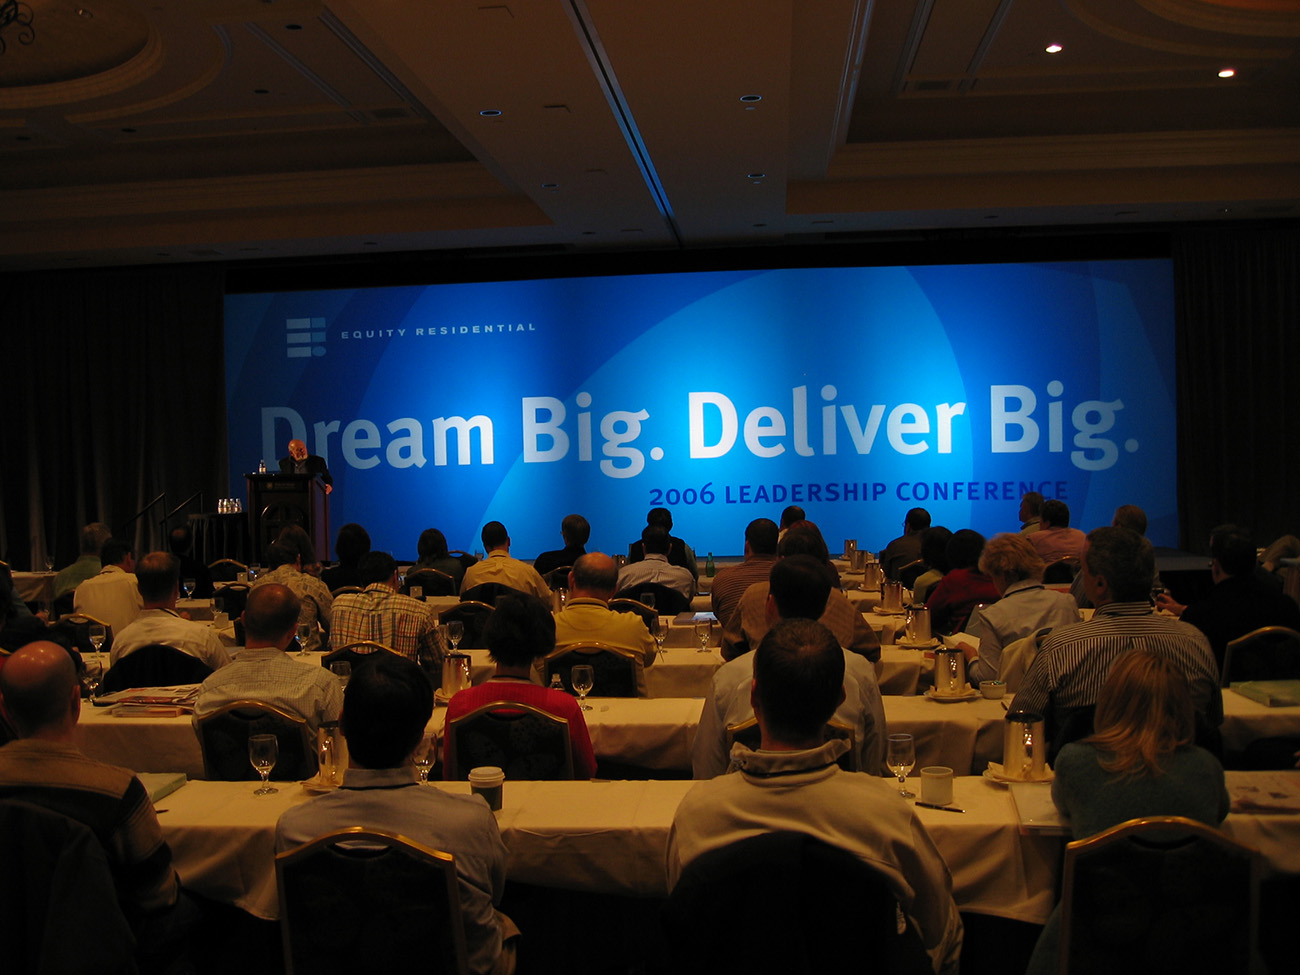 2006 Leadership Summit | Dream Big. Deliver Big., Equity Residential